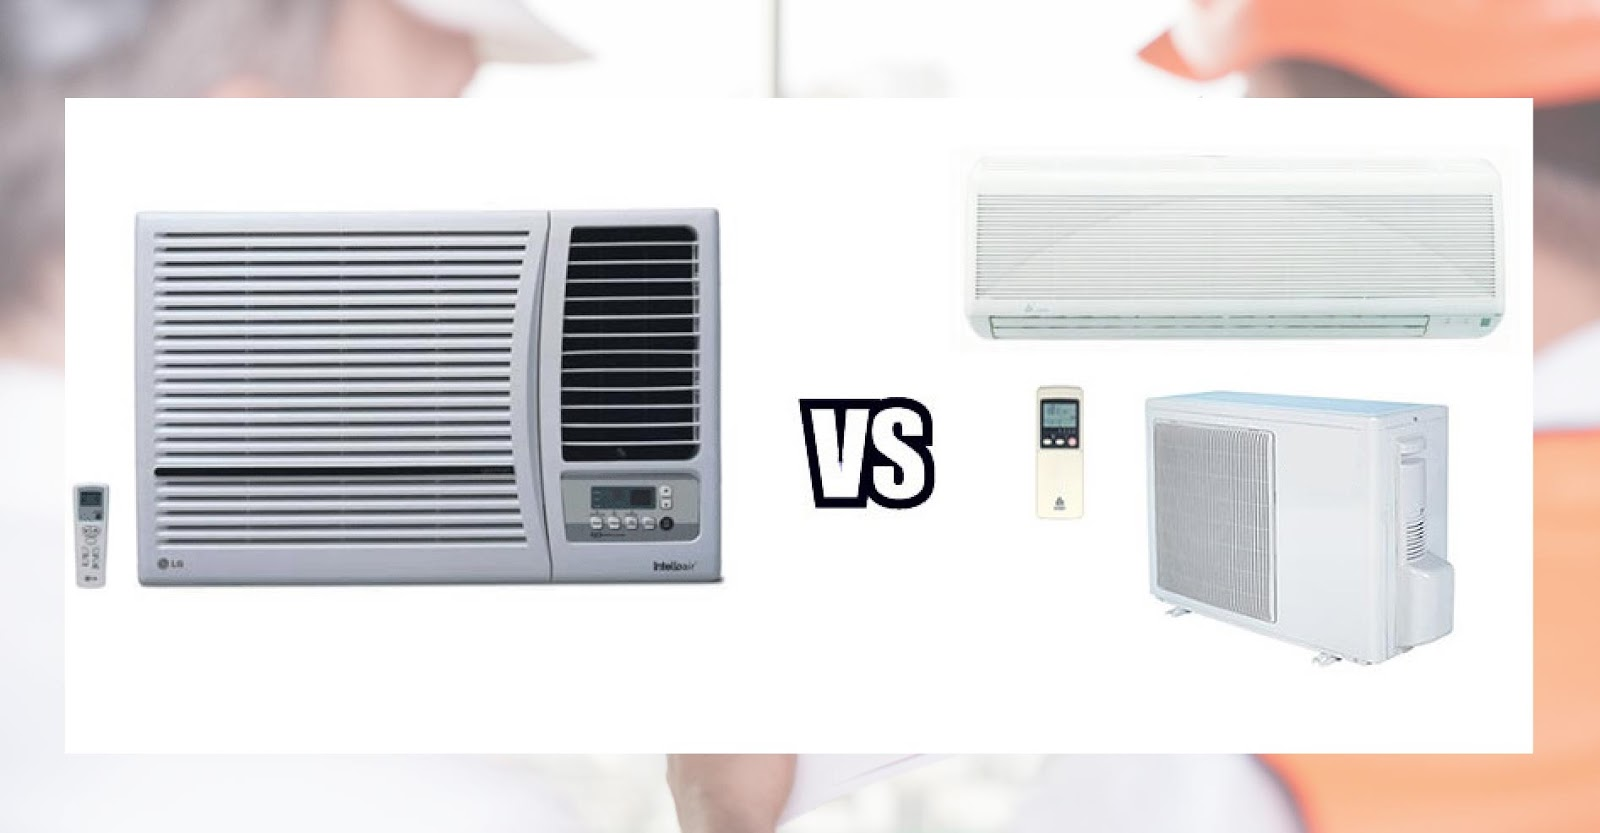 #BD4B0E Air Con Services Home Services Hong Kong: Hkaircon.repair  Brand New 12531 How To Fix Air Conditioner Not Cooling images with 1600x833 px on helpvideos.info - Air Conditioners, Air Coolers and more